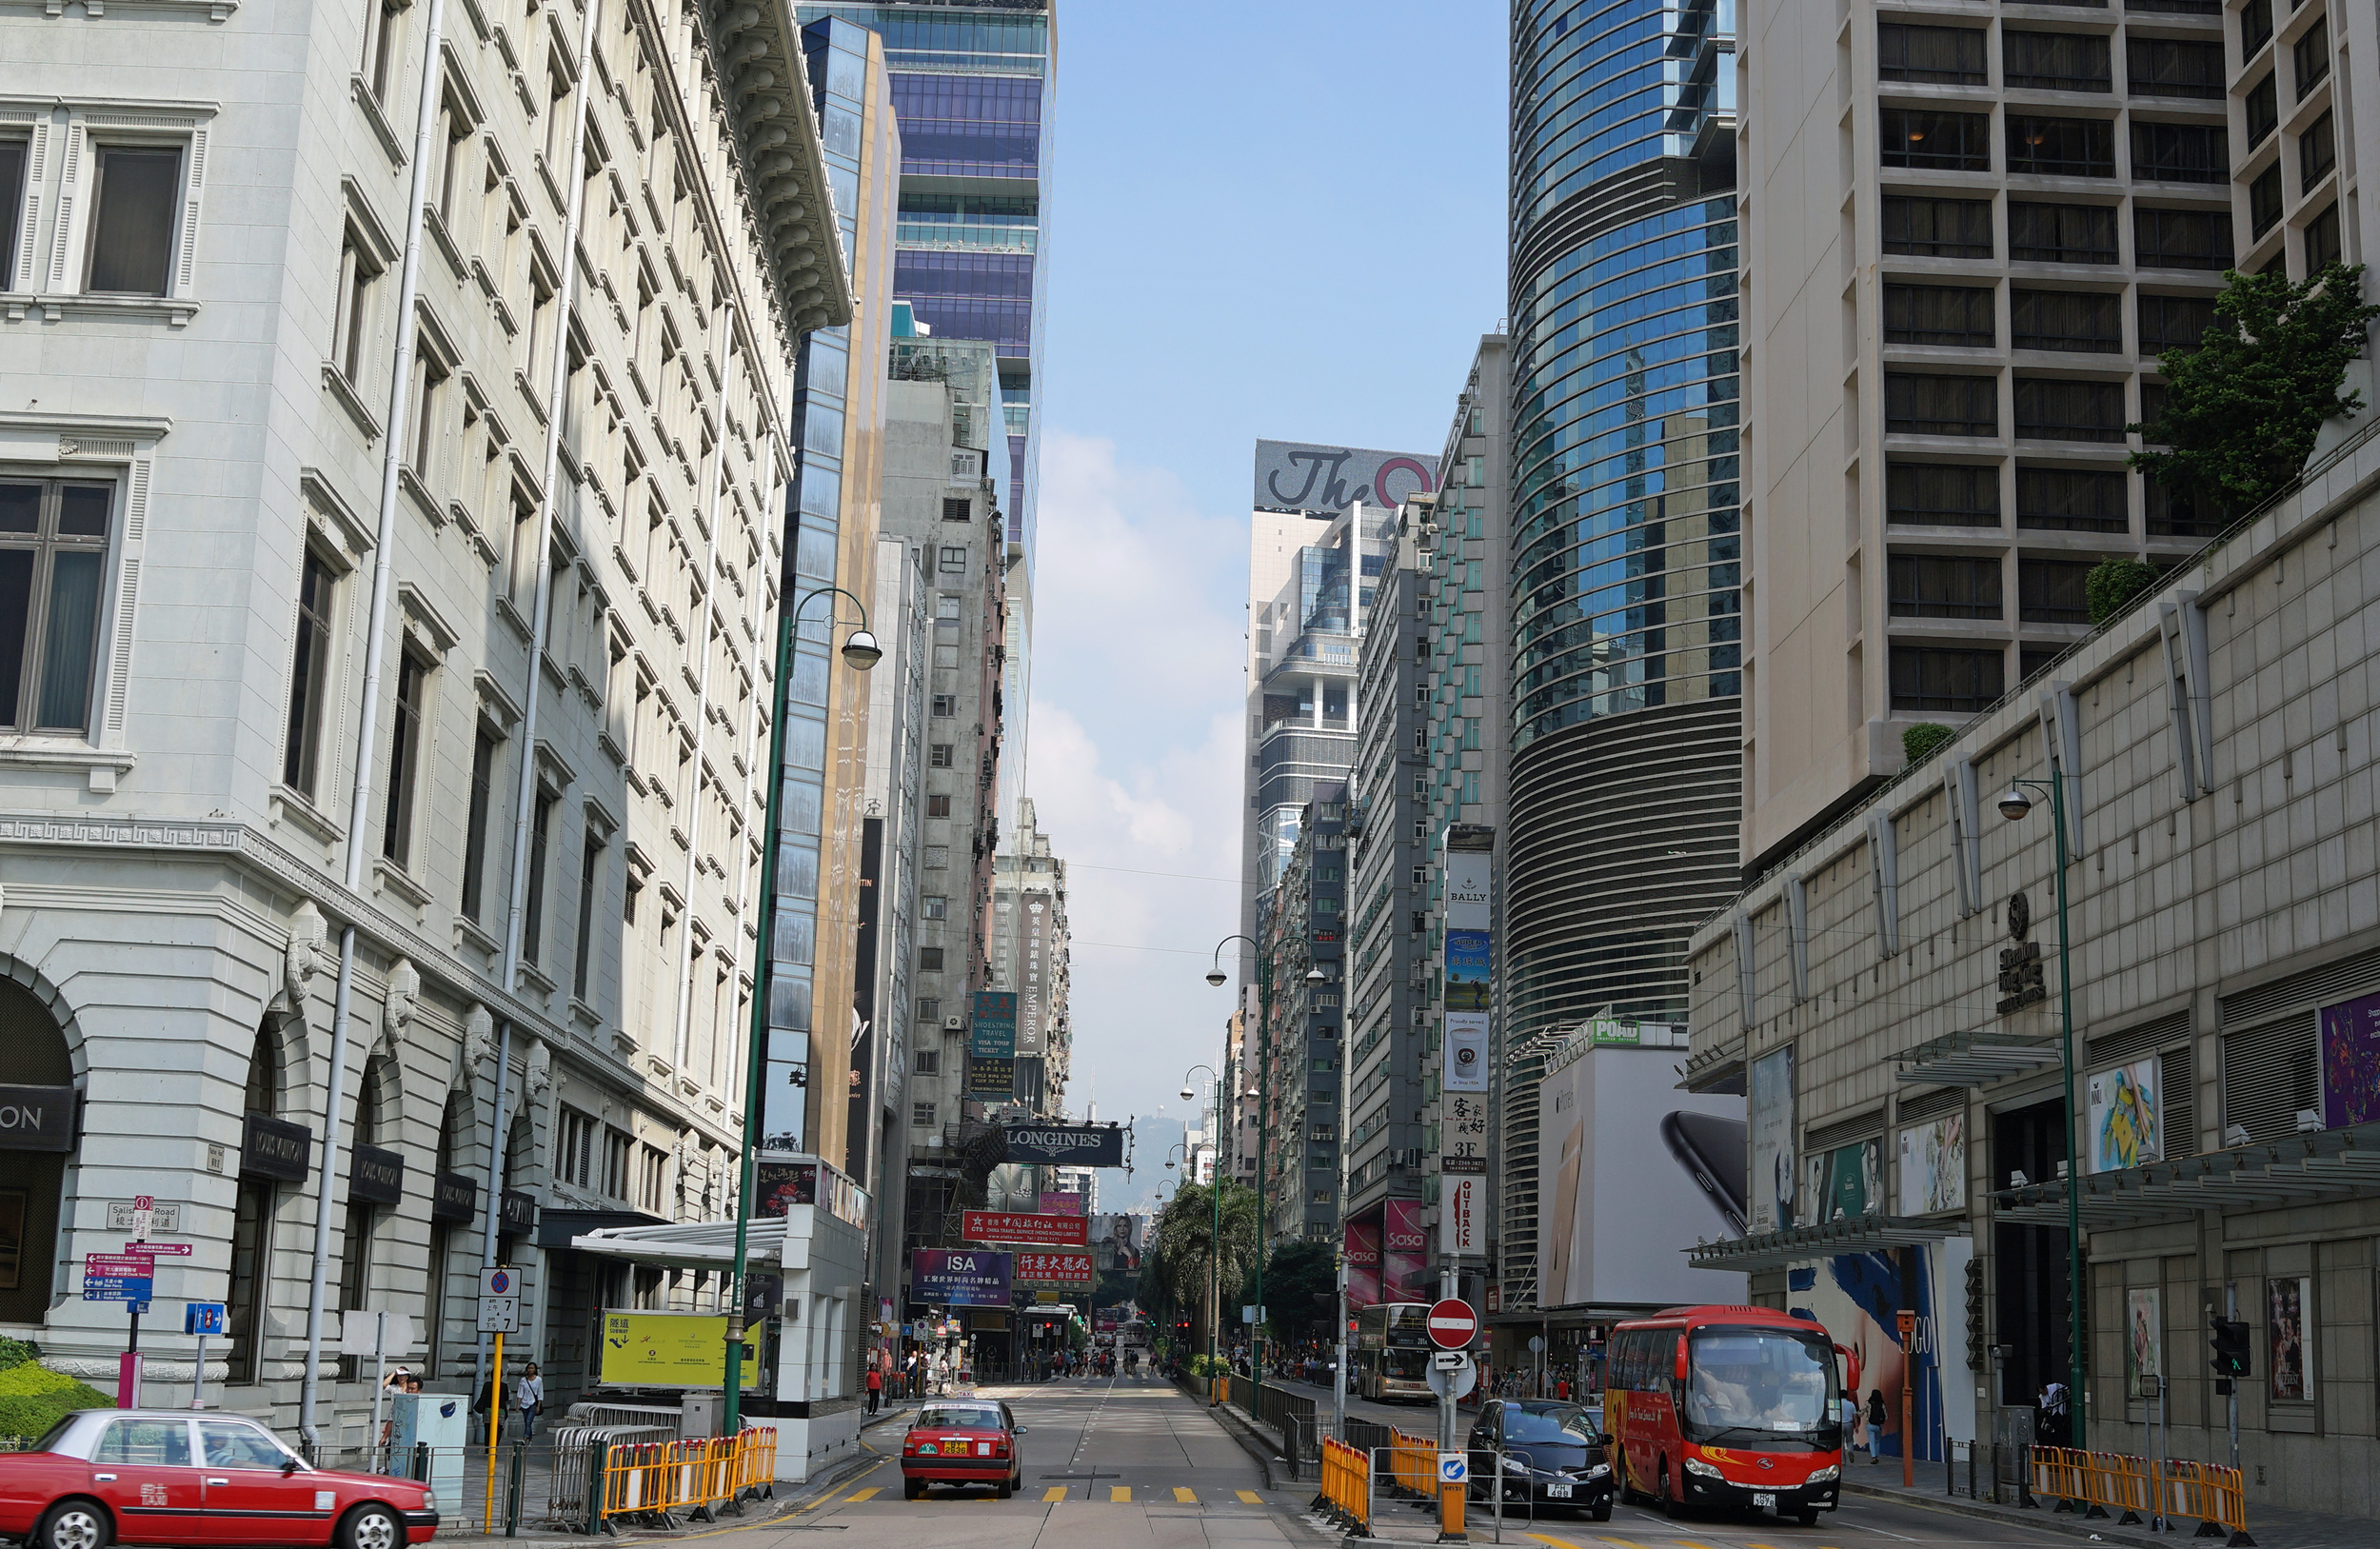 The Peninsula Hotel on the left, the Sheraton Hotel on the right - this is the start of Nathan Road in TST, Kowloon. 2 miles of non stop shopping